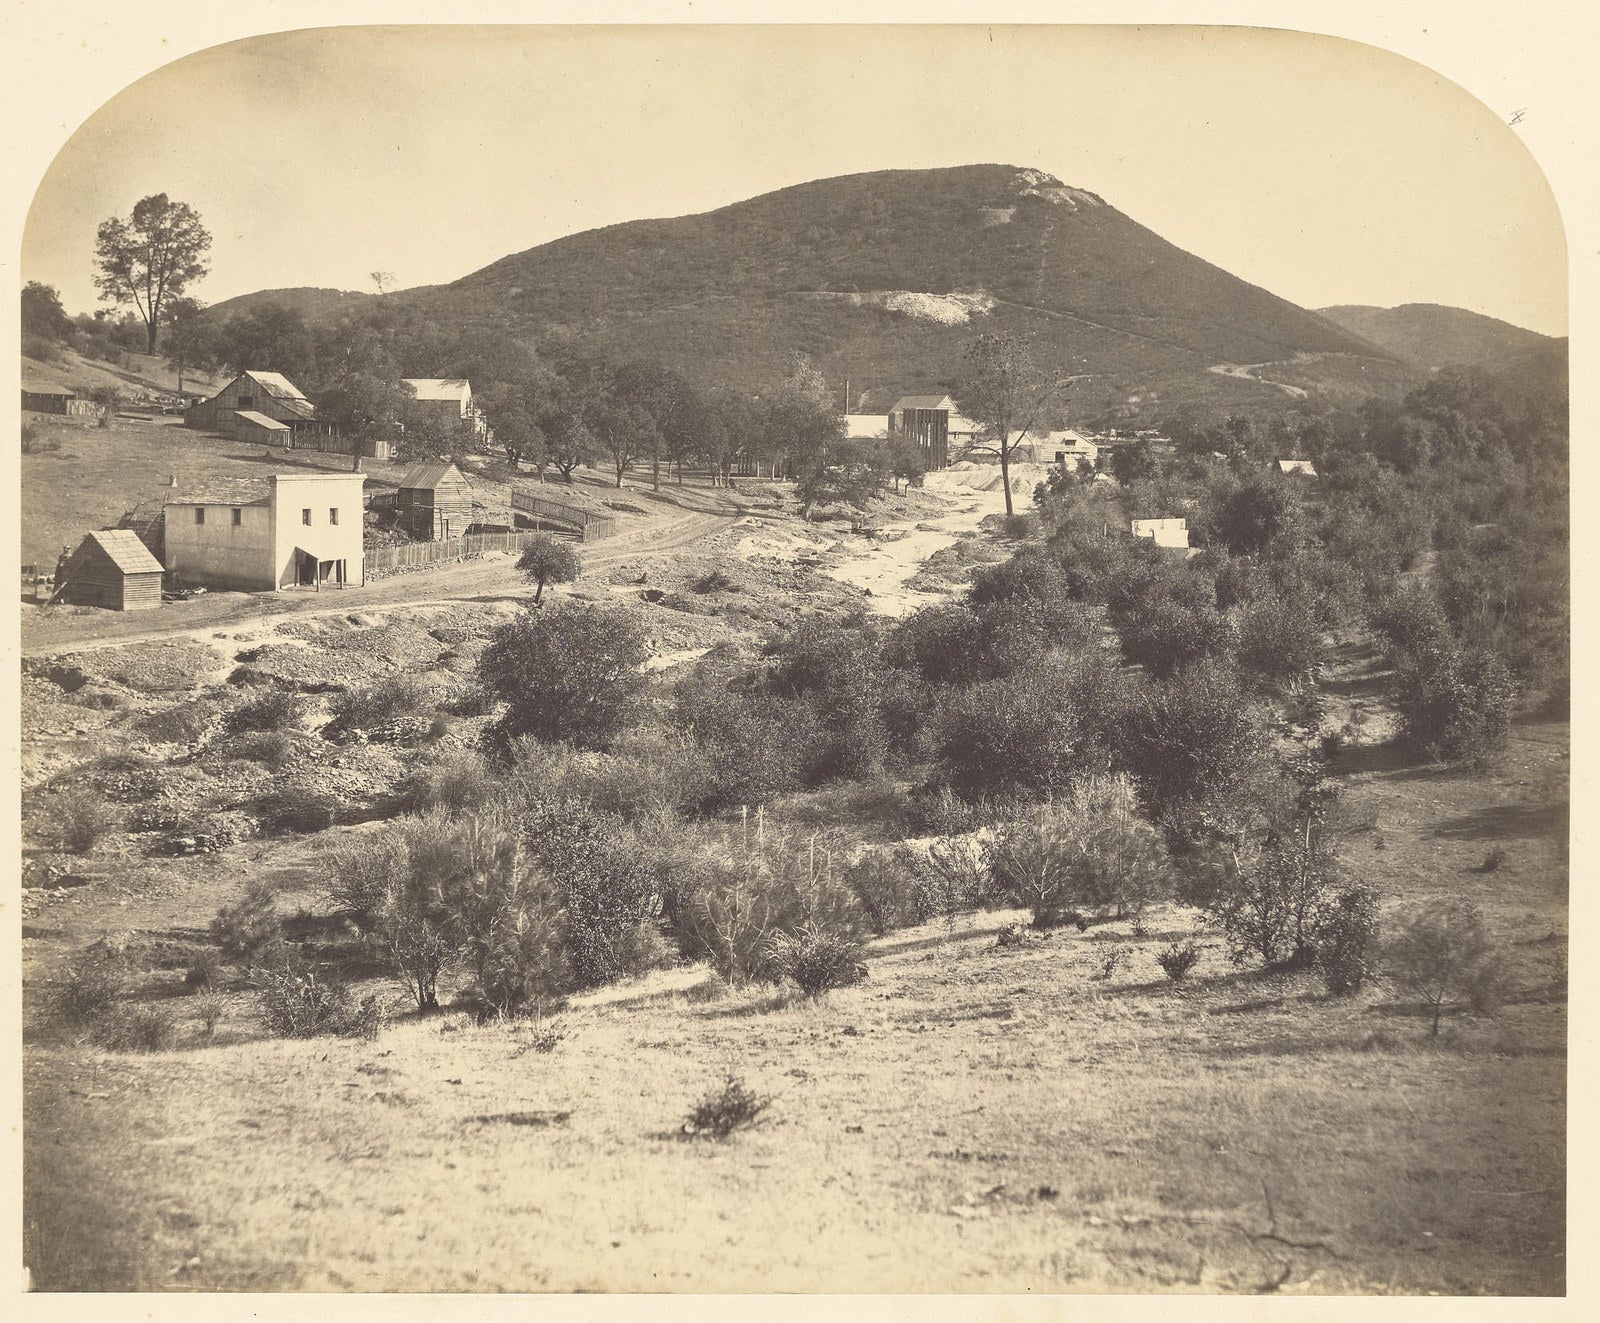 Mount Ophir, California, 1859–60. Photograph by Carleton Watkins.